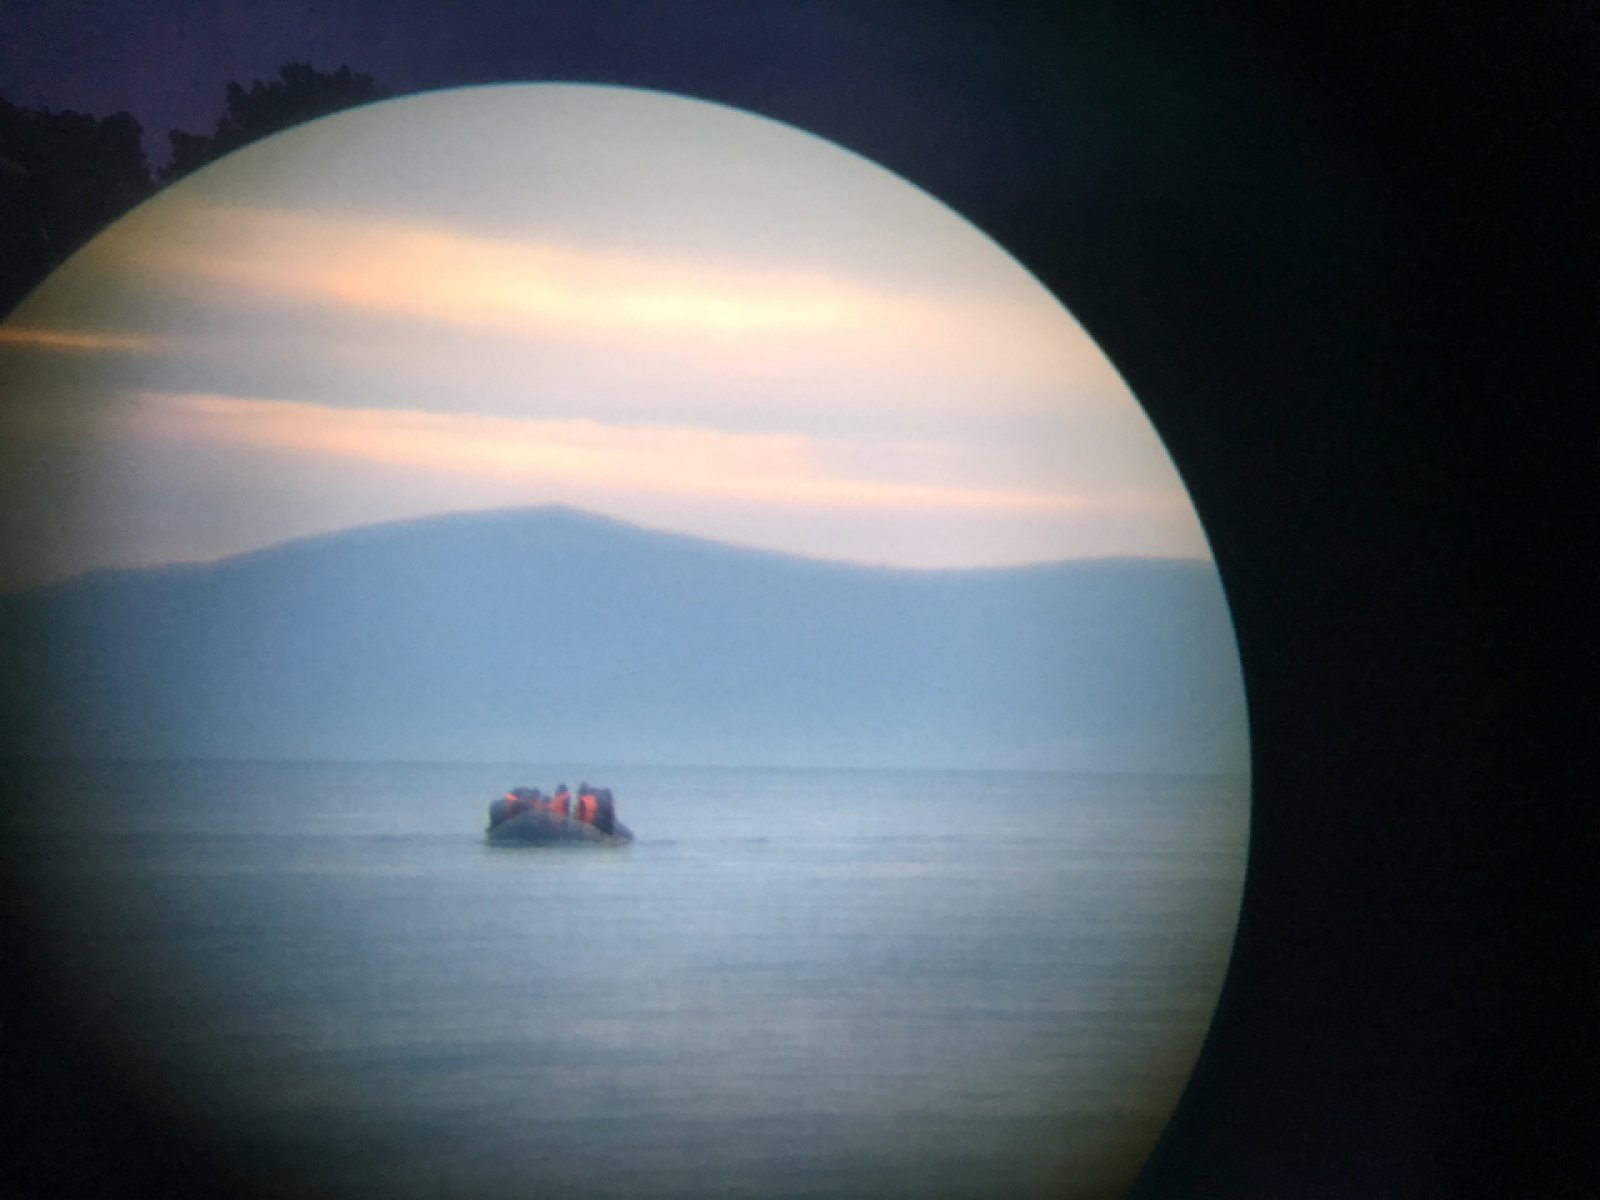 Incoming refugee boat, Lesbos, Greece. 17 February 2016 © Ai Weiwei Studio